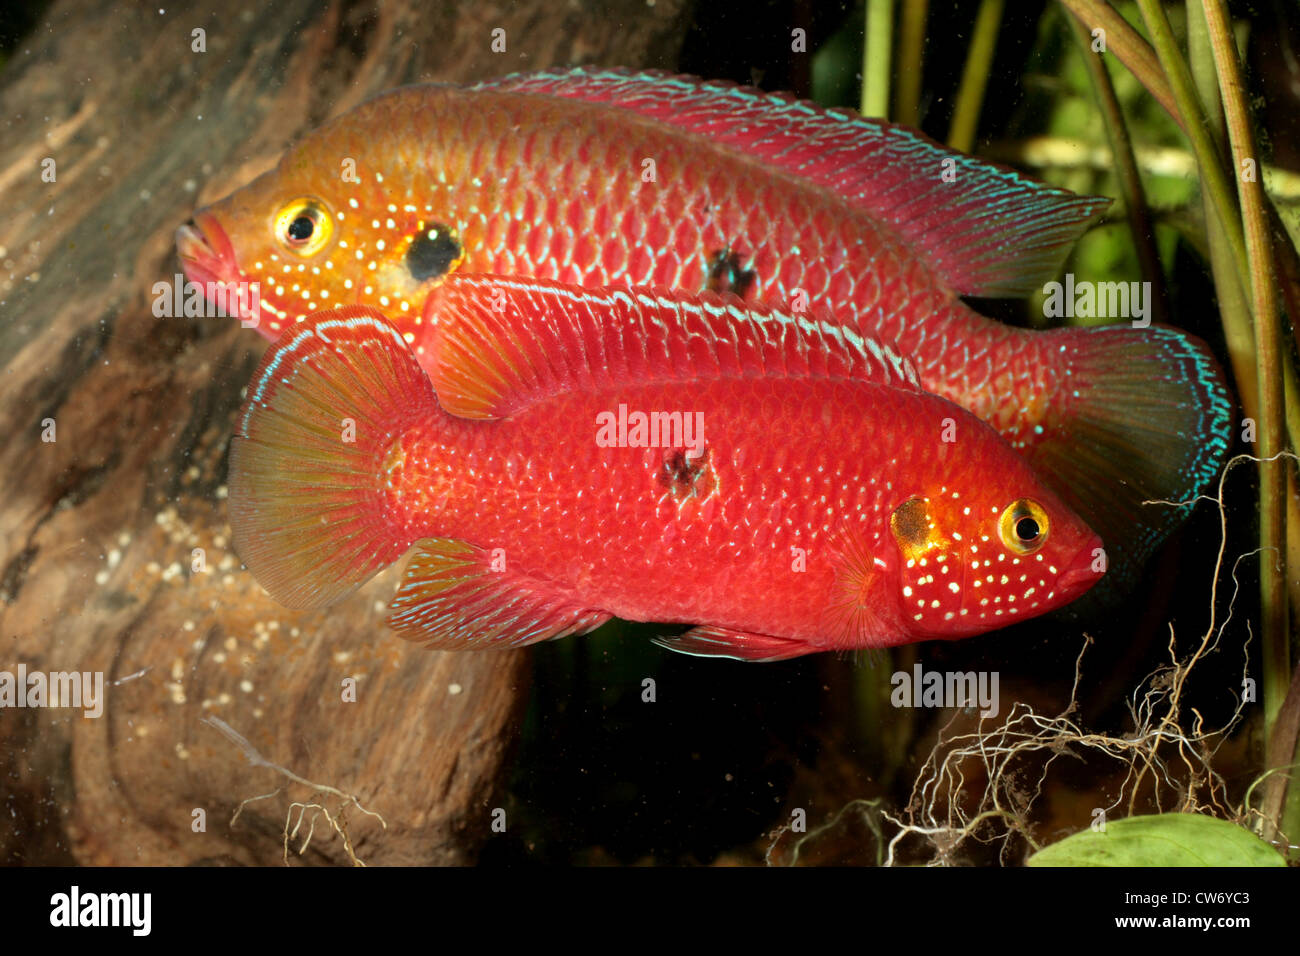 Fish Eggs Water Stock Photos & Fish Eggs Water Stock Images - Alamy